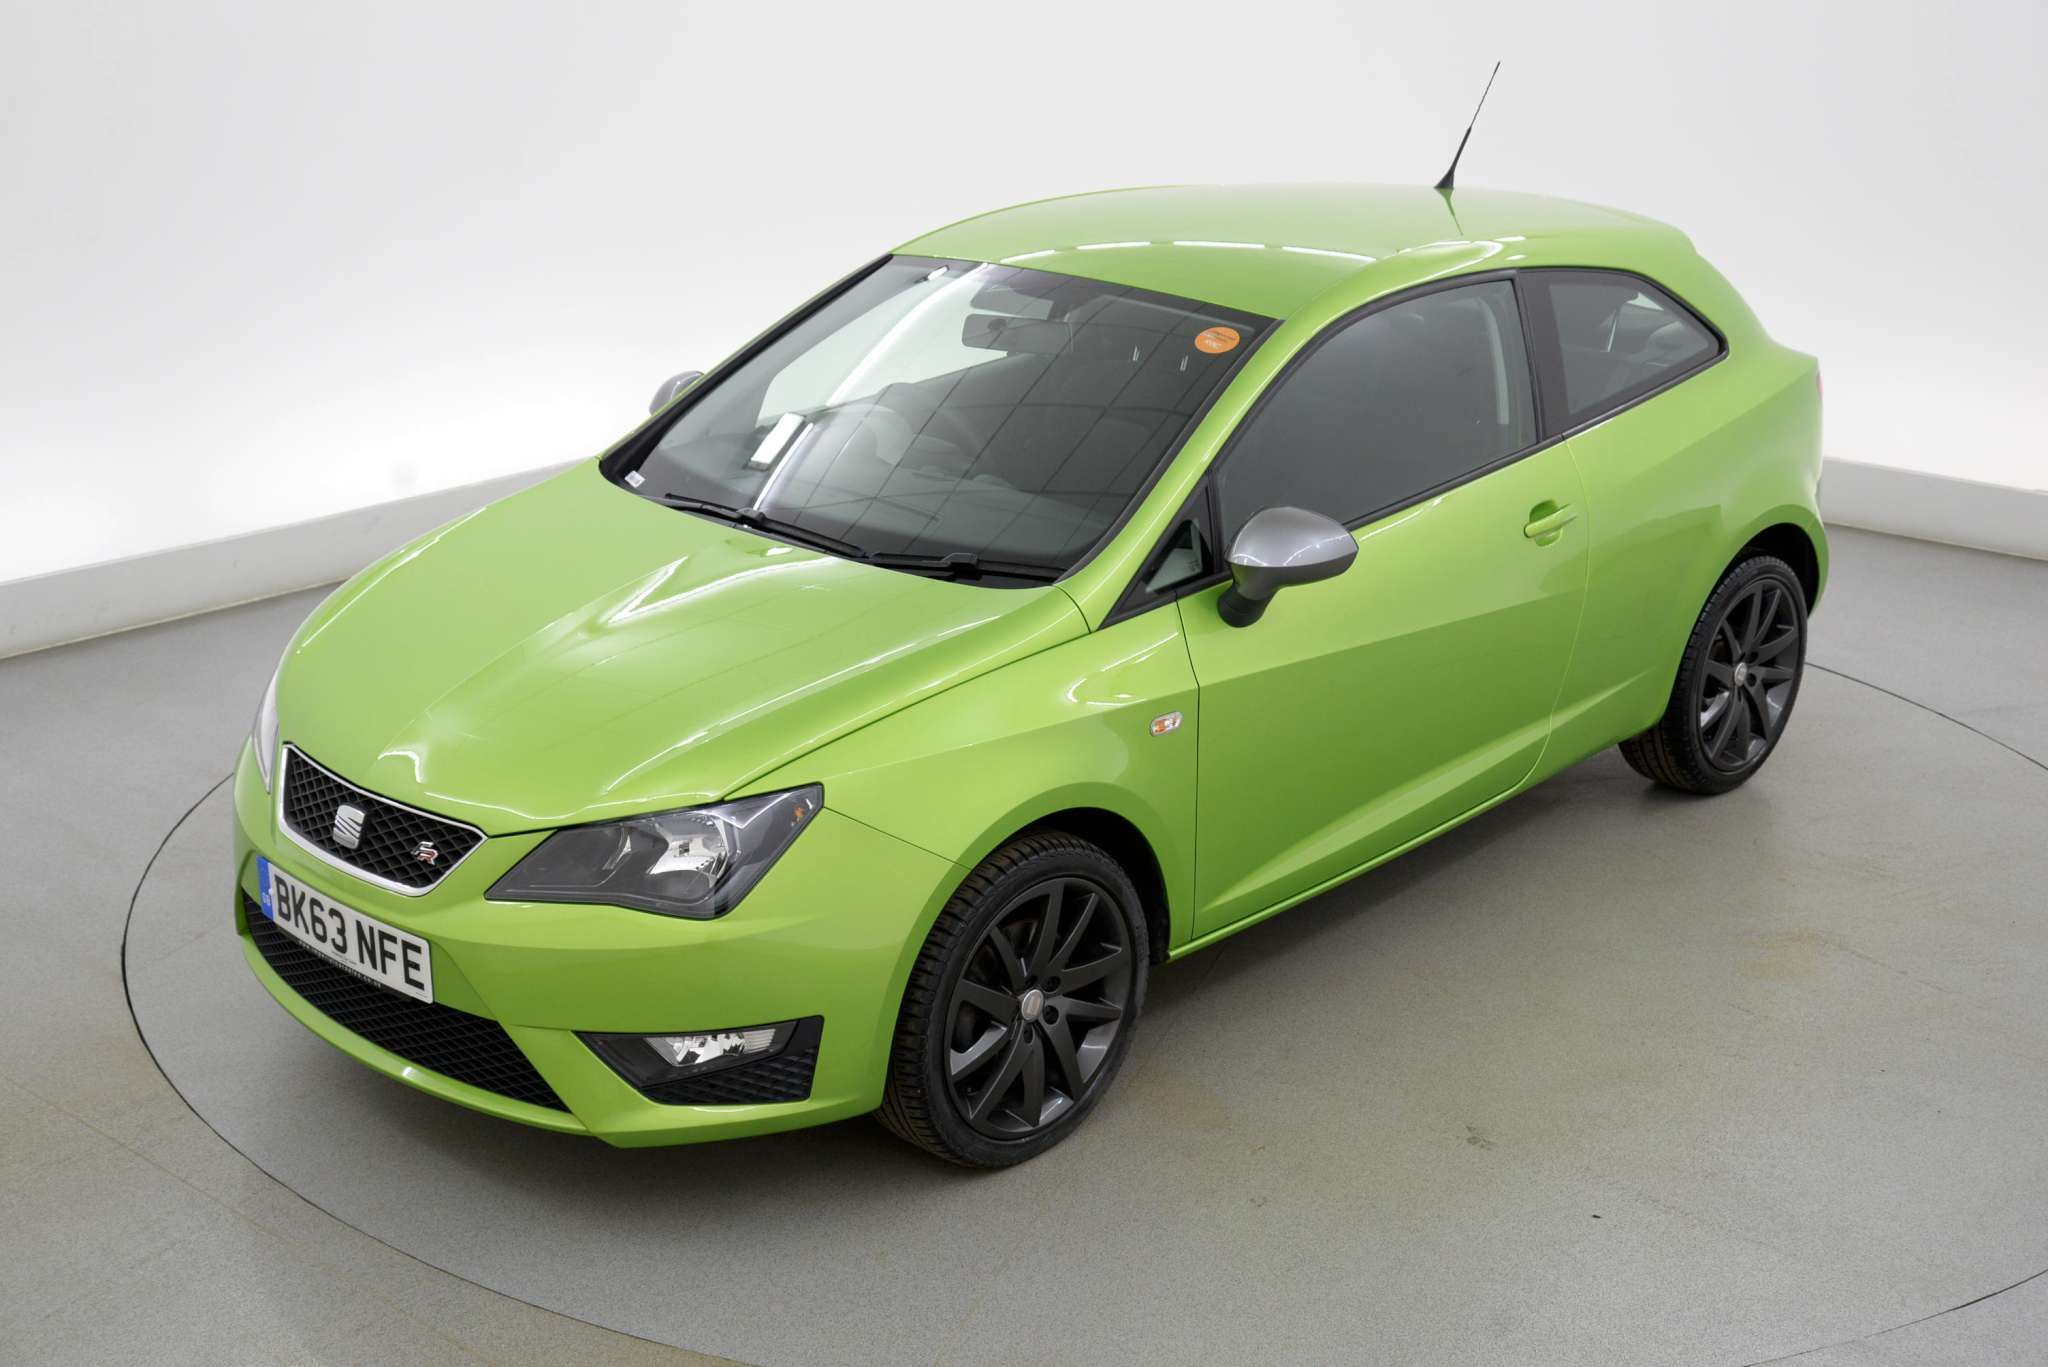 Used Seat Ibiza 1 6 Tdi Cr Fr 3dr For Sale In Southampton Imperial Ibiza Hot Hatch Seating